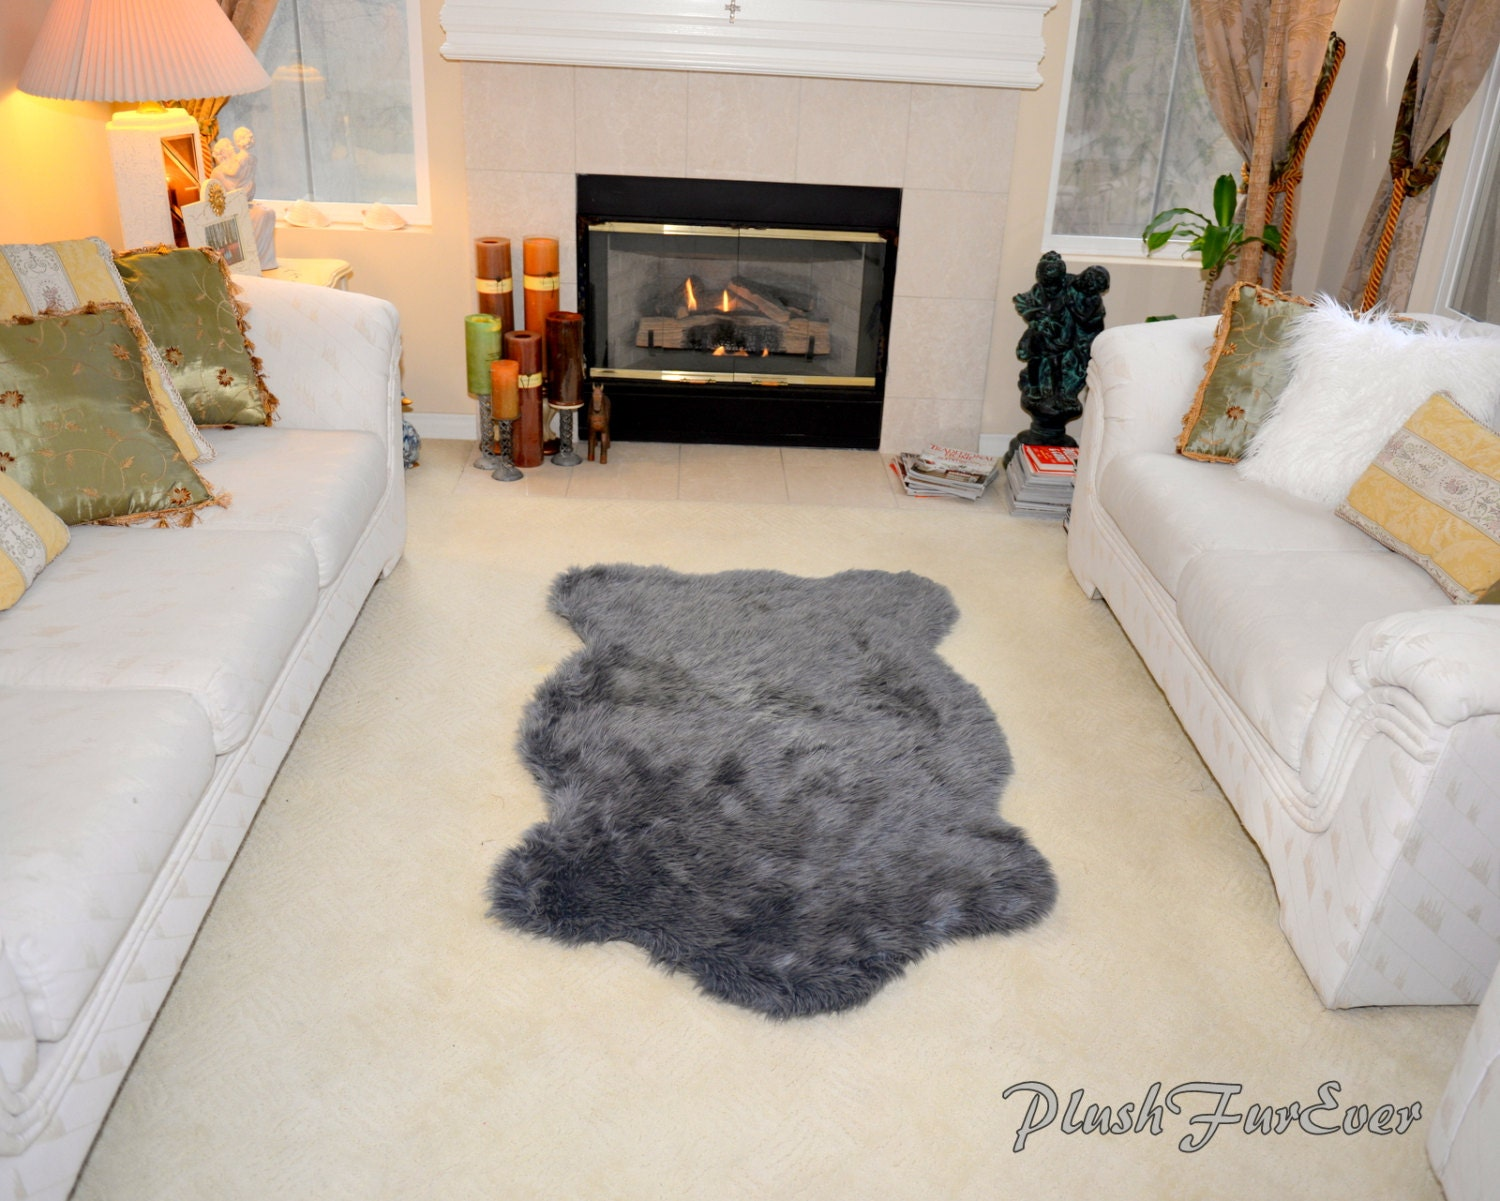 Luxury Gray Sheepskin Faux Fur Rug Living Room Rug Elegant Fashion Home  Decor Nursery Gifts Or Decor Baby Shower Gifts